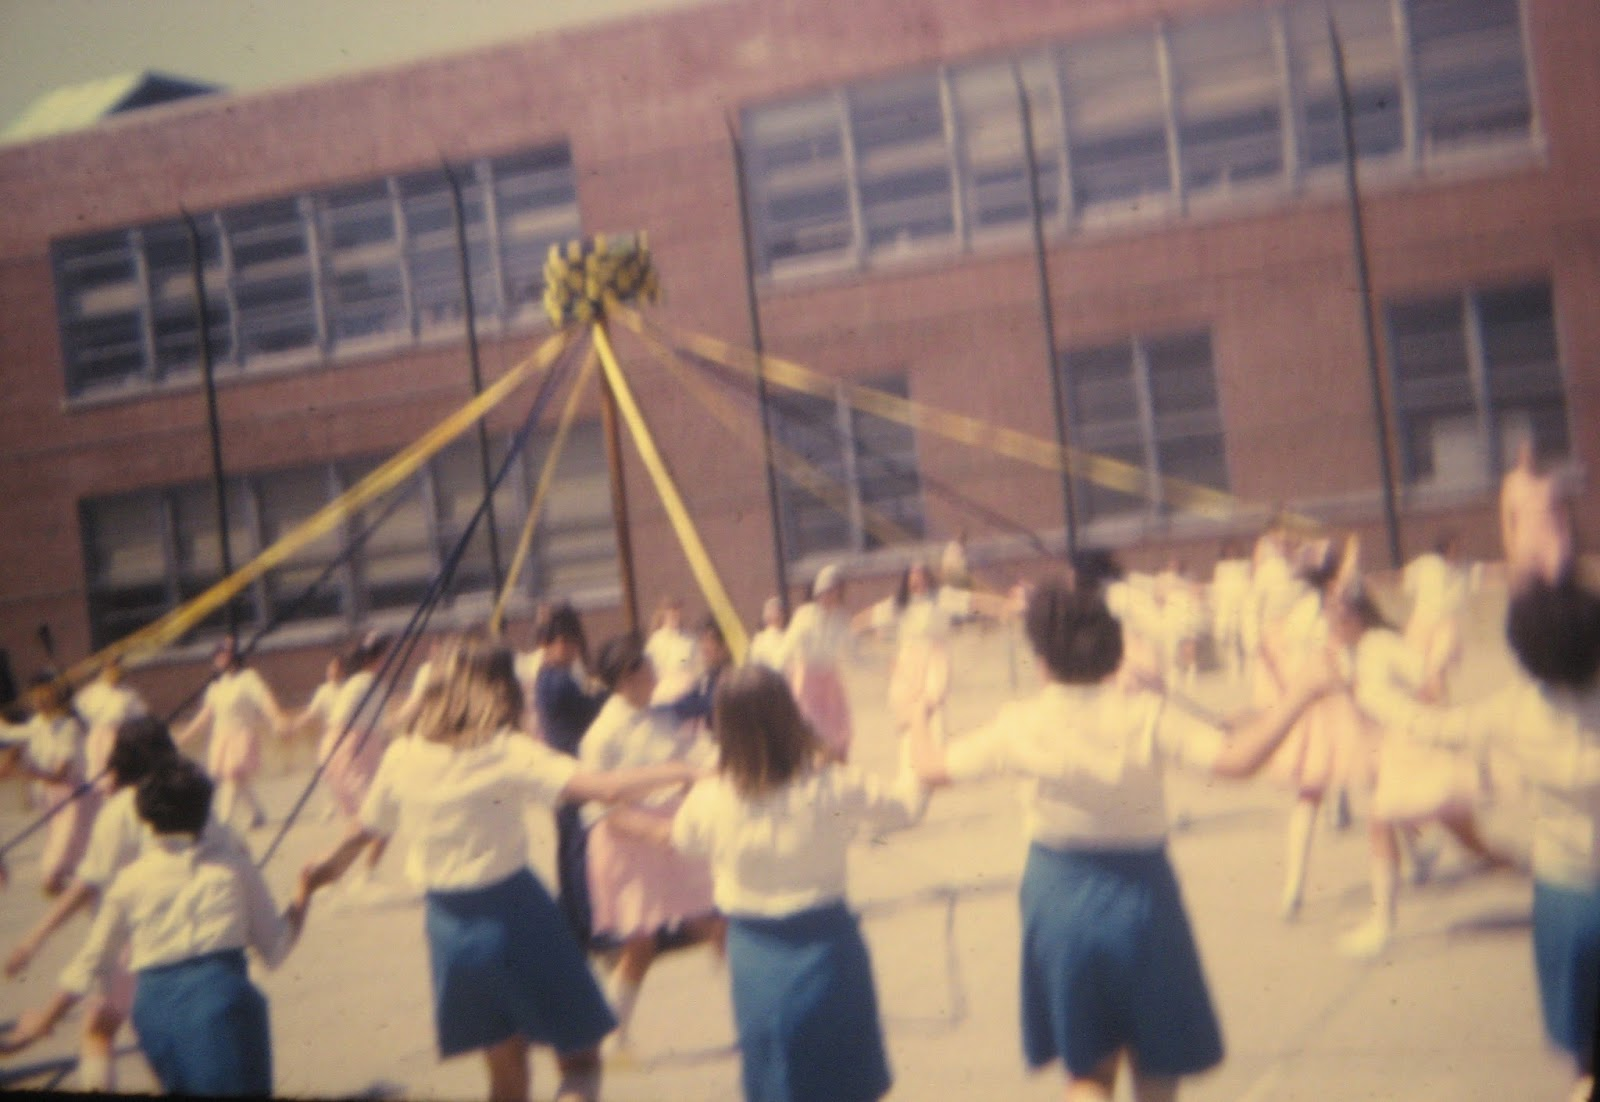 PS22 school May Pole dance Staten Island, New York June 1968